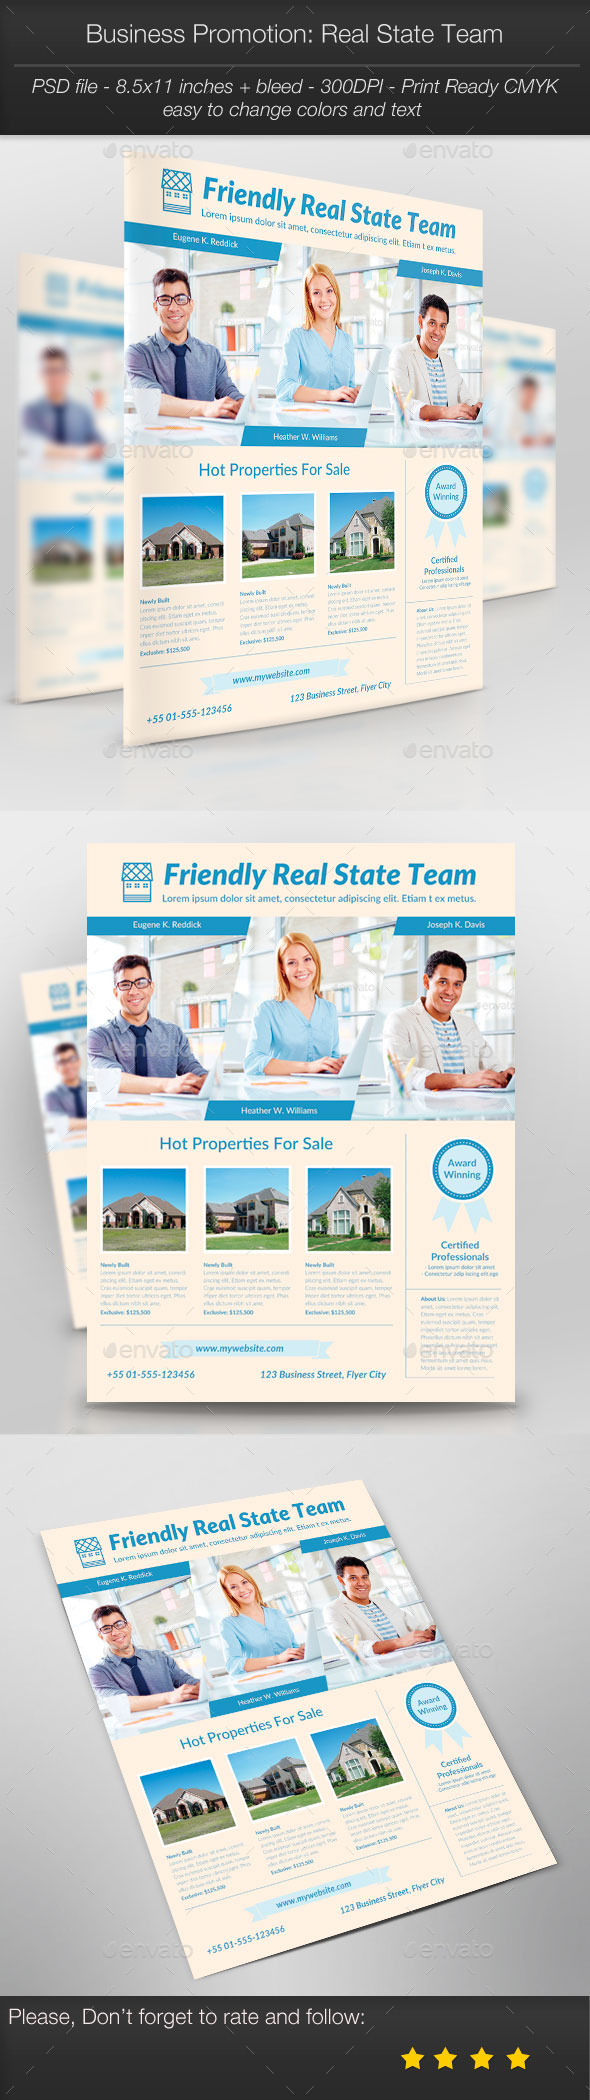 GraphicRiver Business Promotion Real State Team 10780486